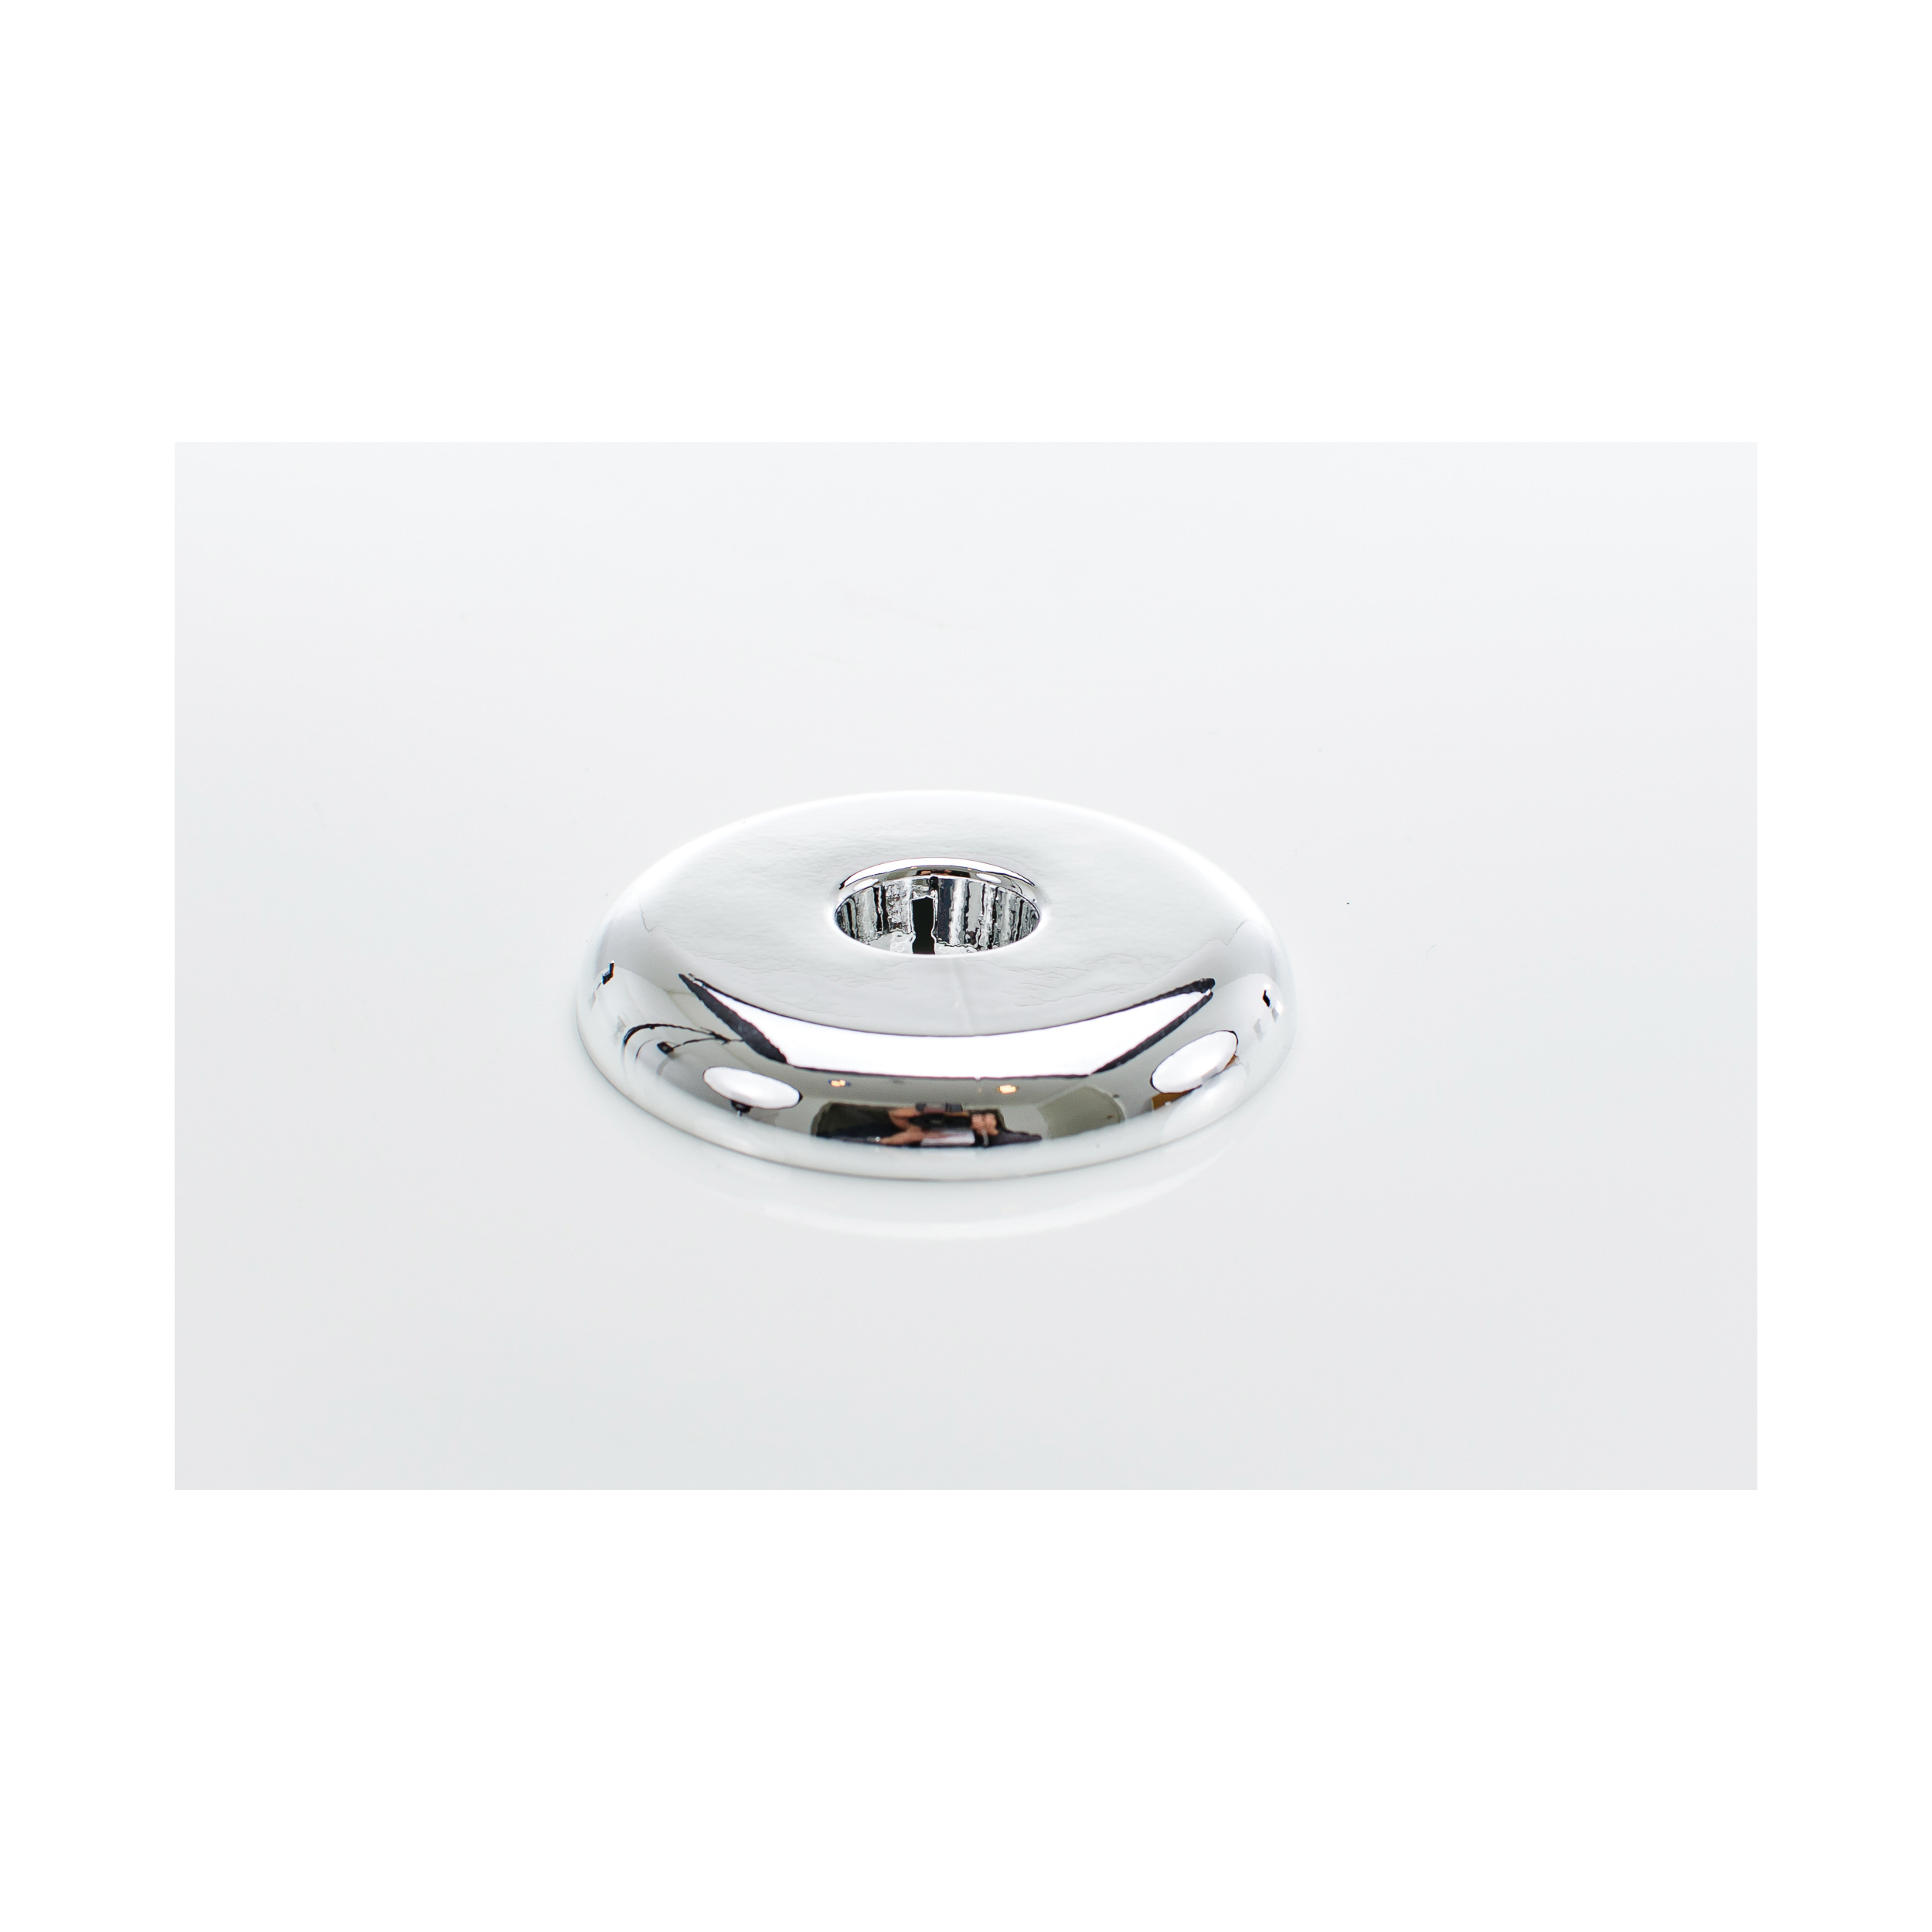 PASCO 2873 Split-One Floor and Ceiling Plate, 1/2 in CWT Thread, Plastic, Polished Chrome